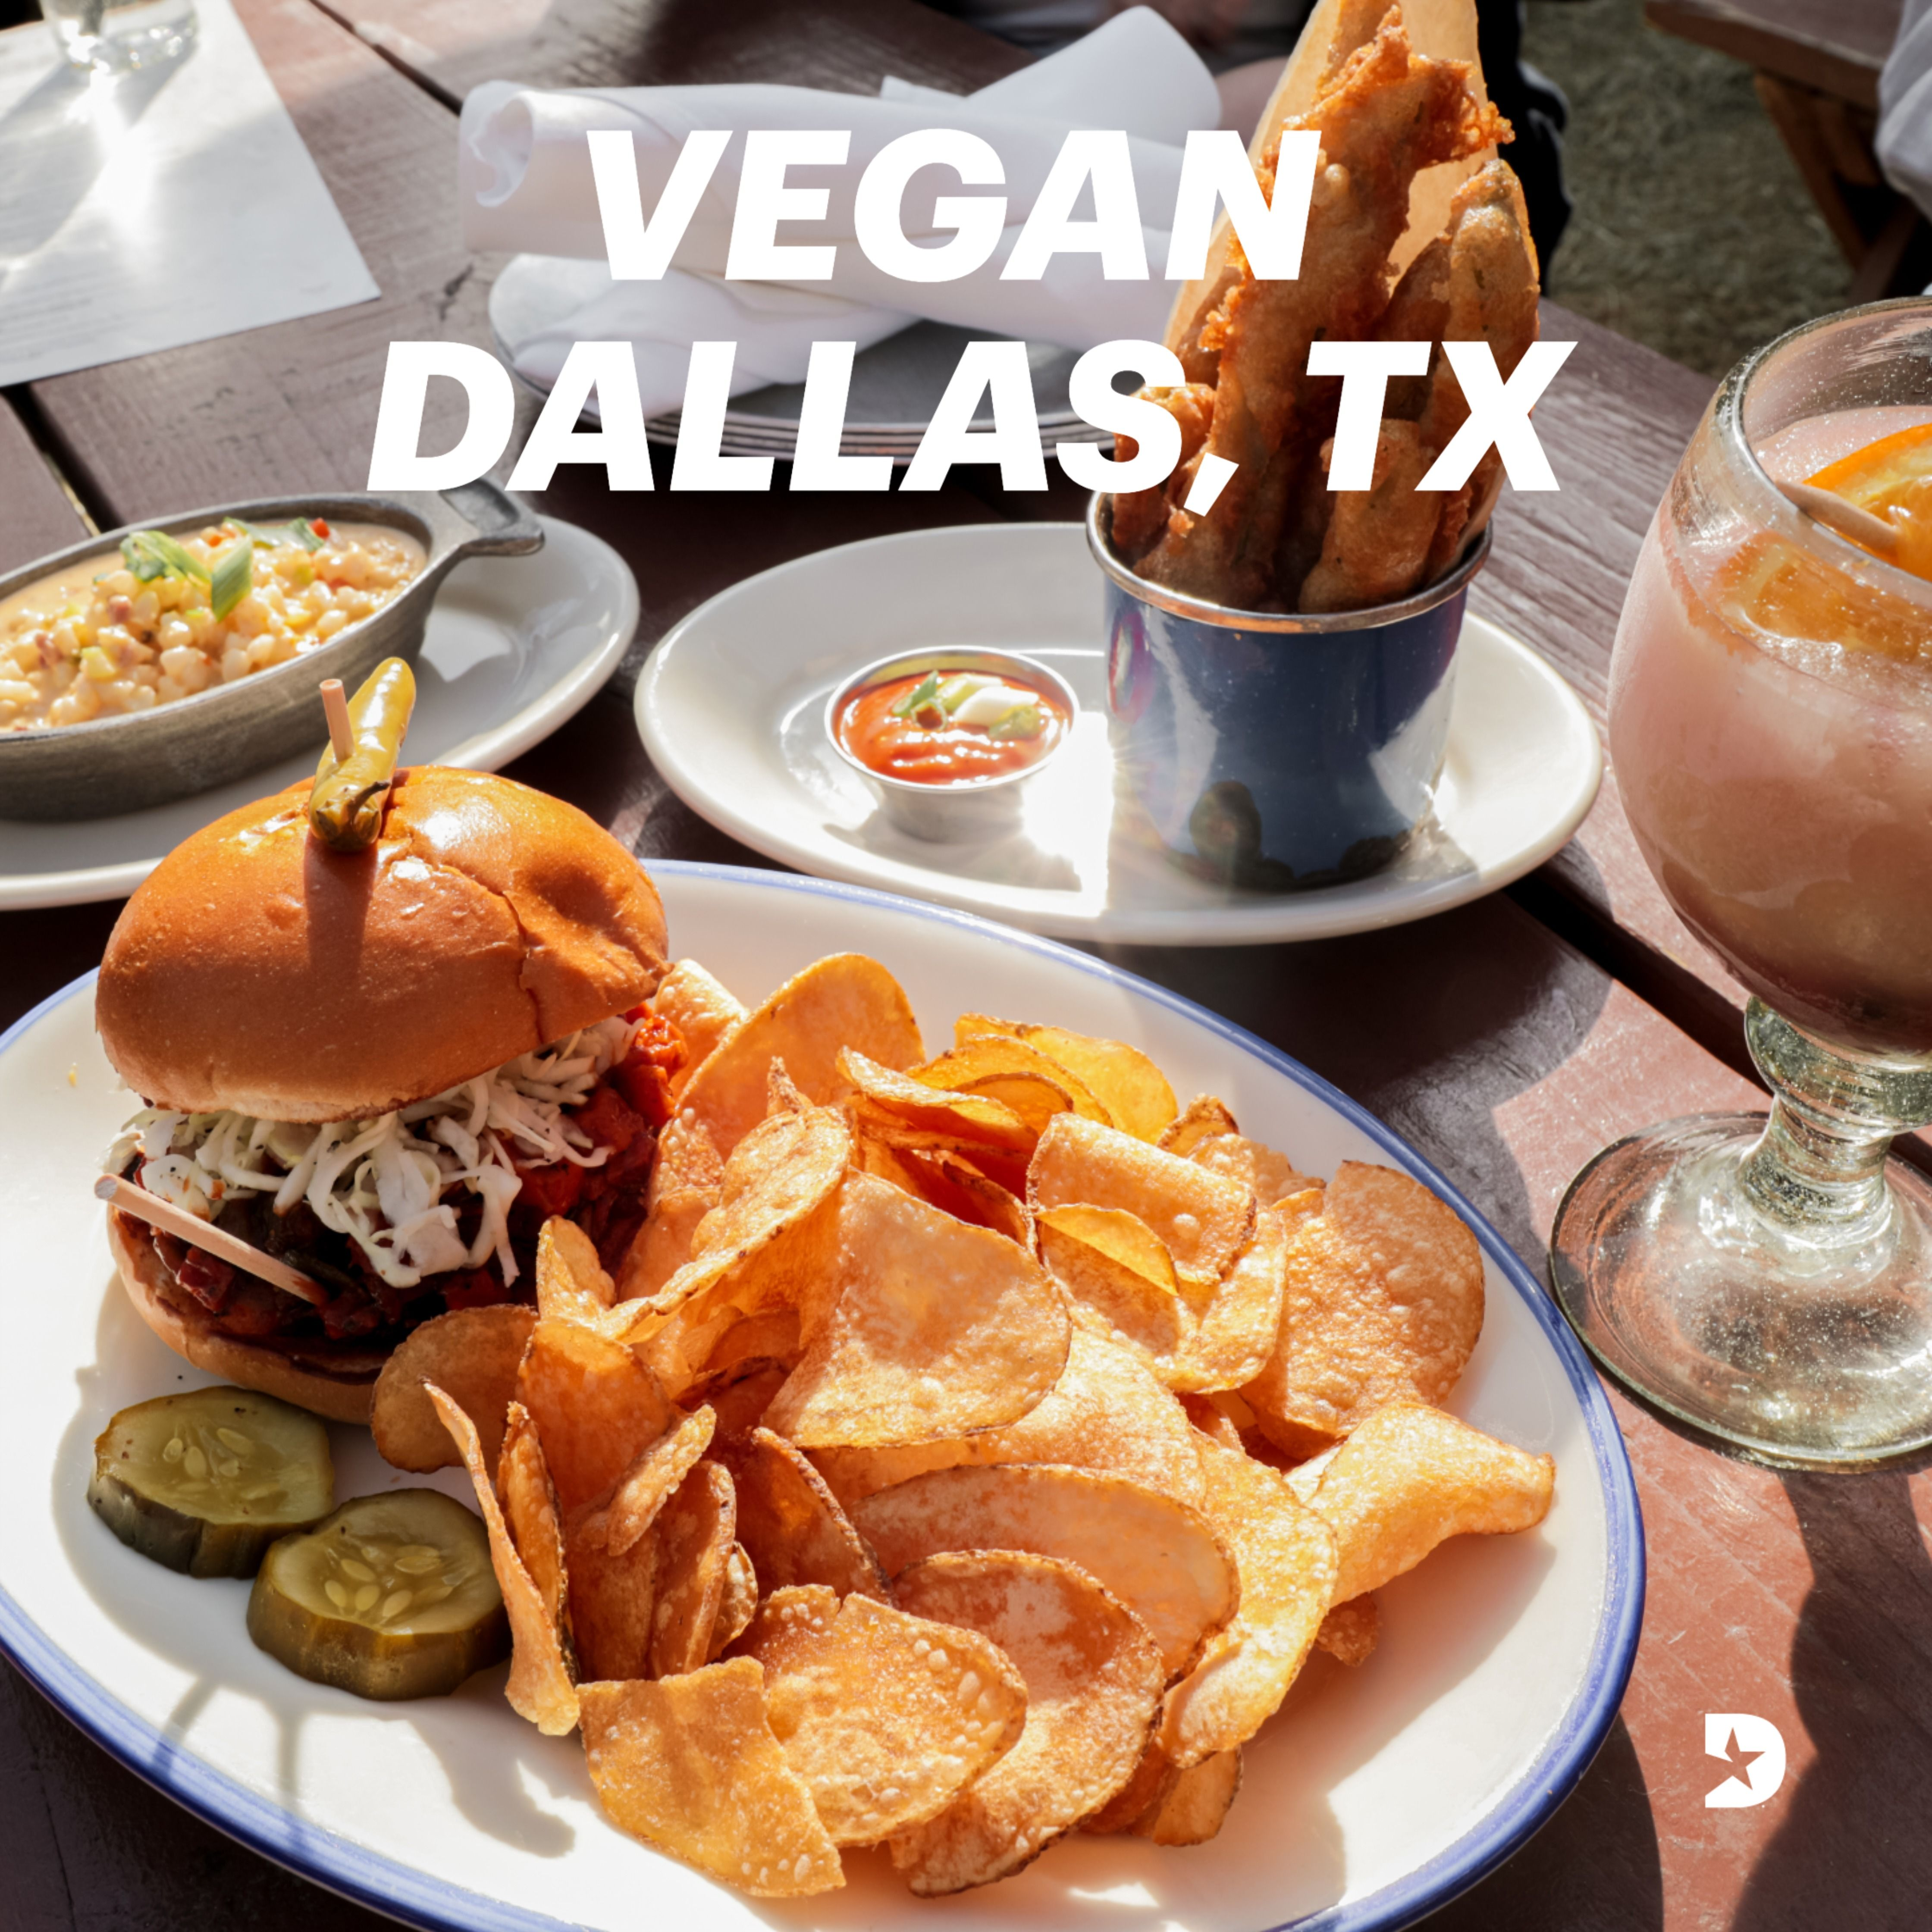 Meat Free Meals In Dallas Tx In 2020 Meat Free Vegan Brunch Meals